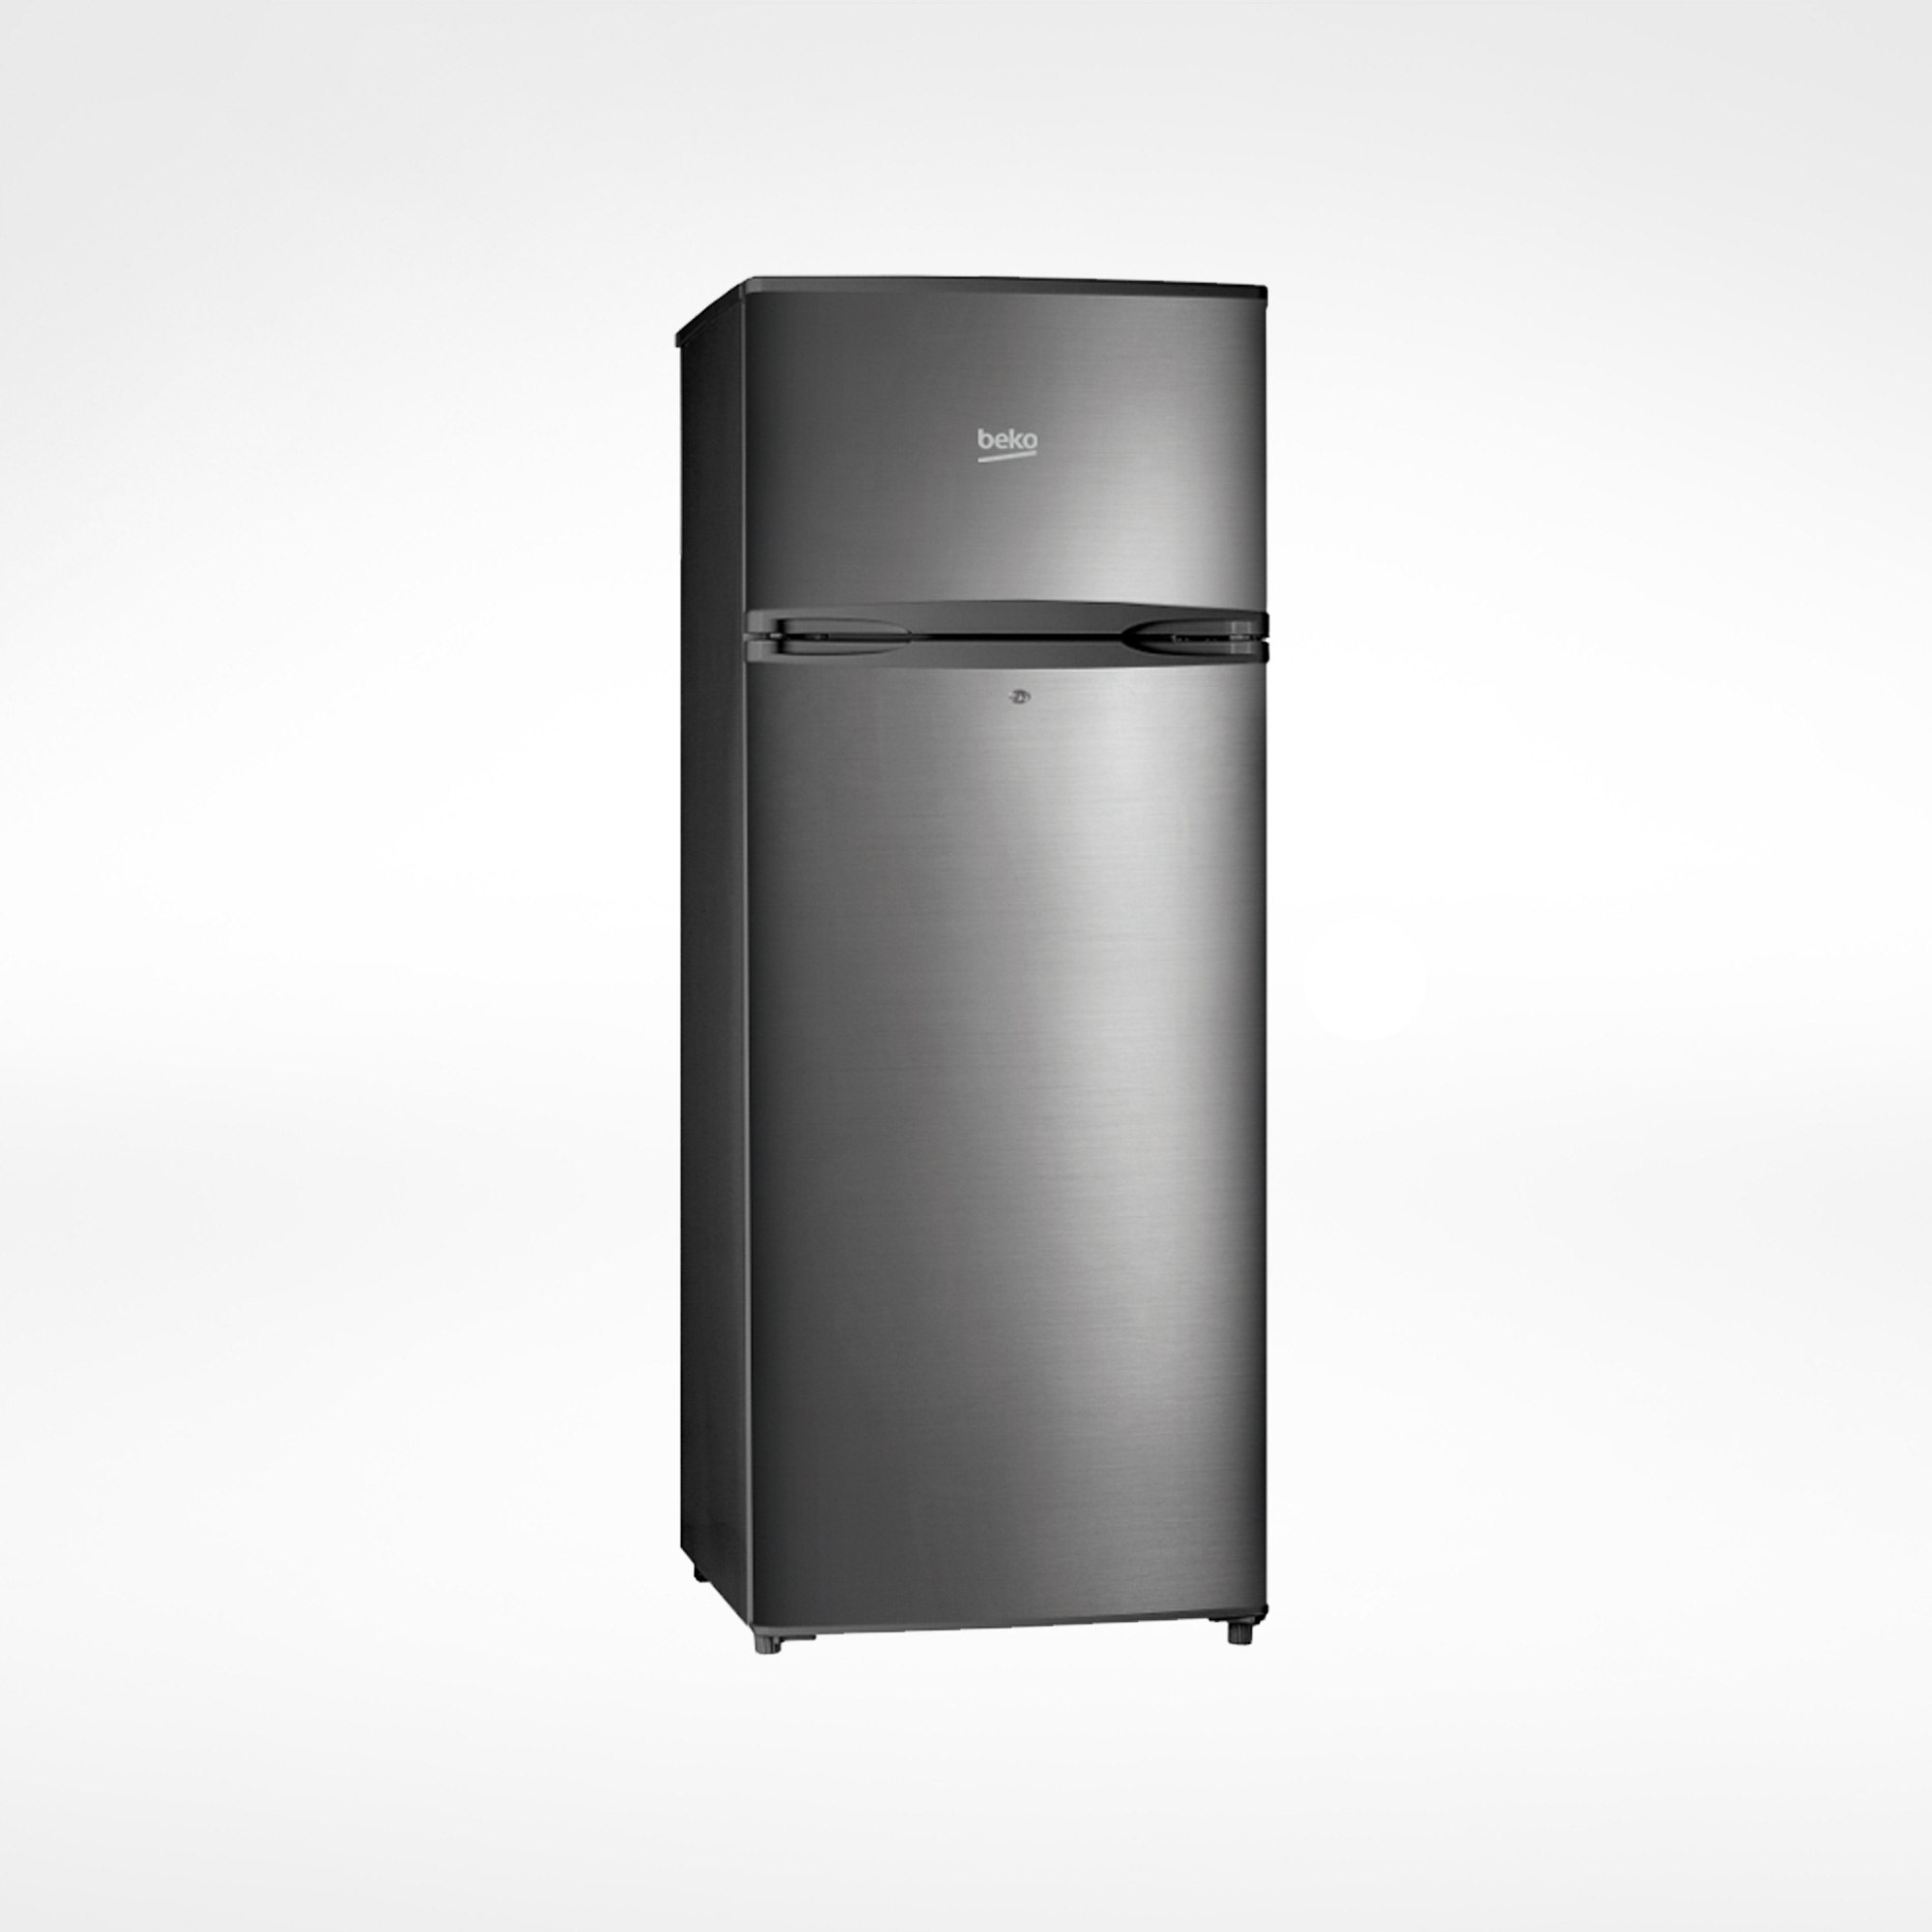 Beko Bad228 Uk Refrigerator Top Freezer Goodluck Africa